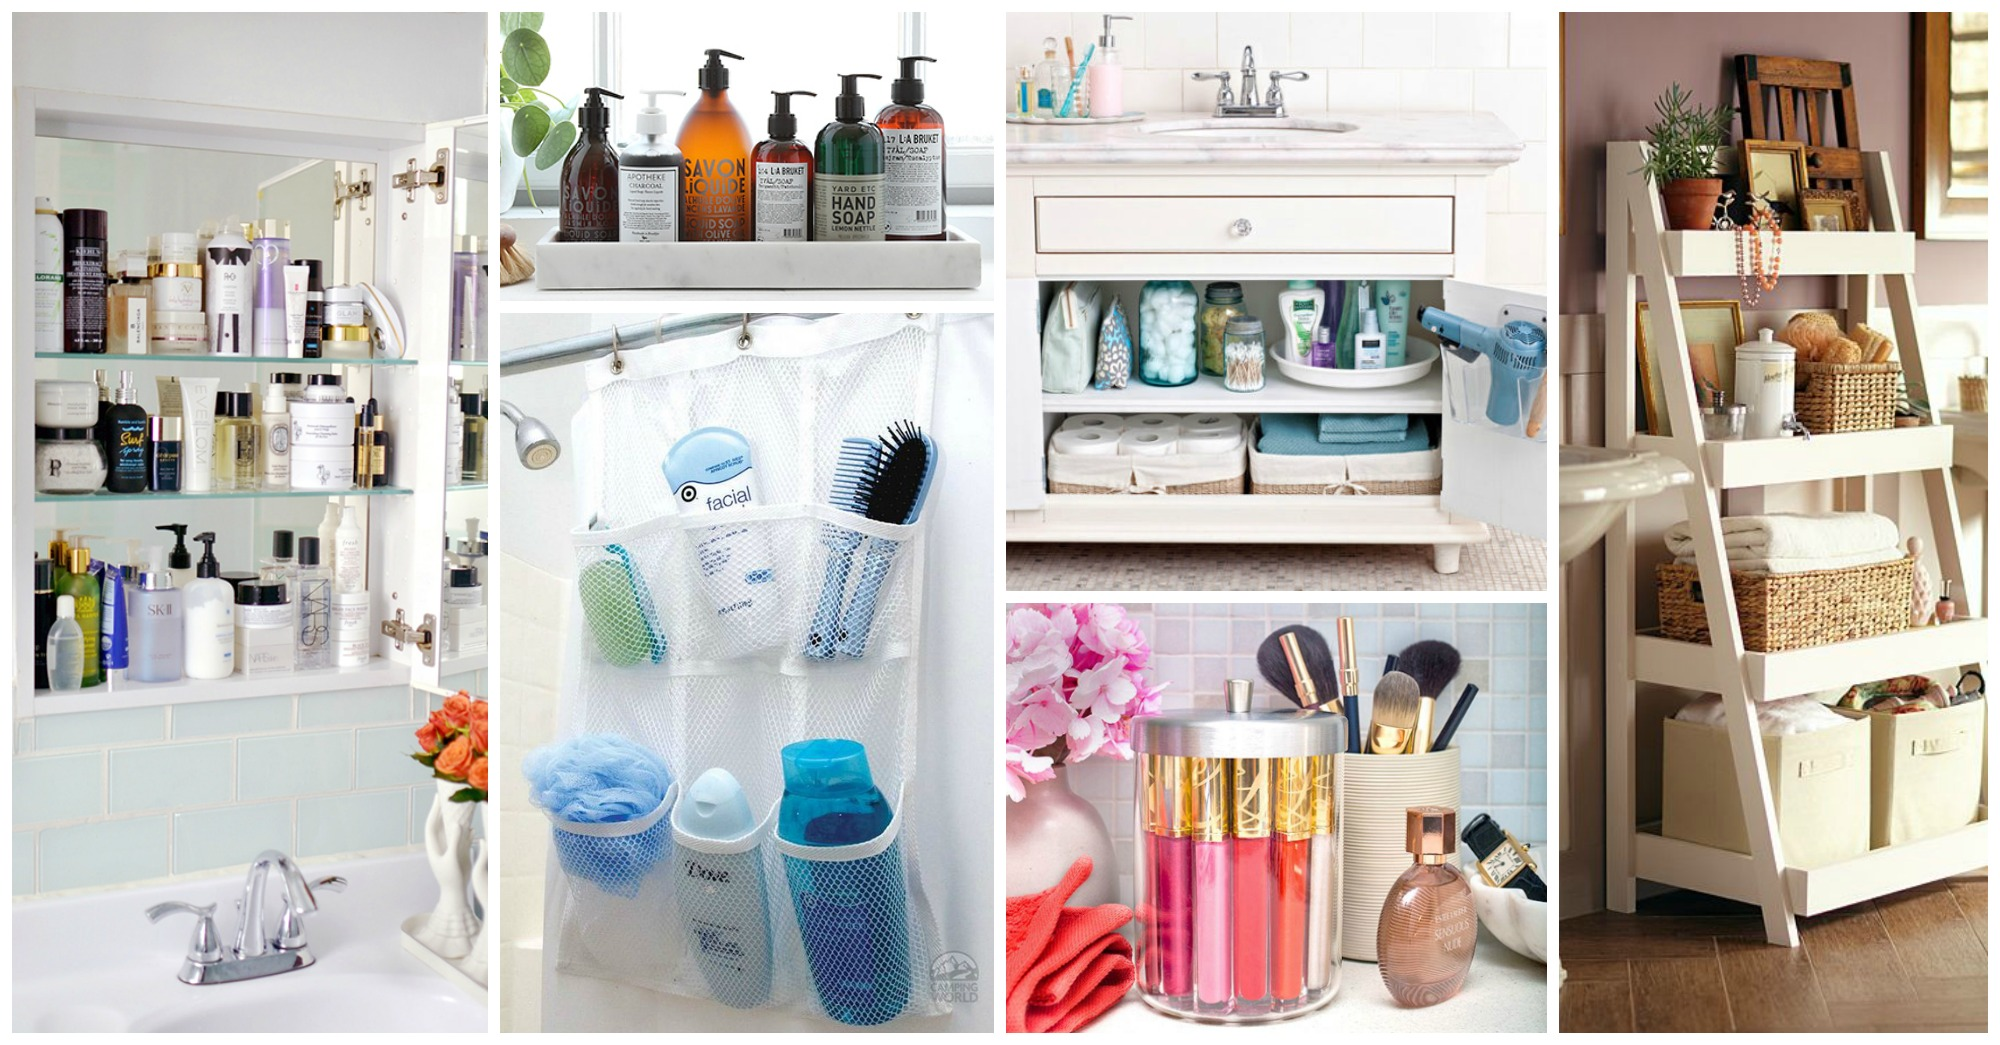 15 Clever Ideas to Organize Your Beauty Products in the Bathroom